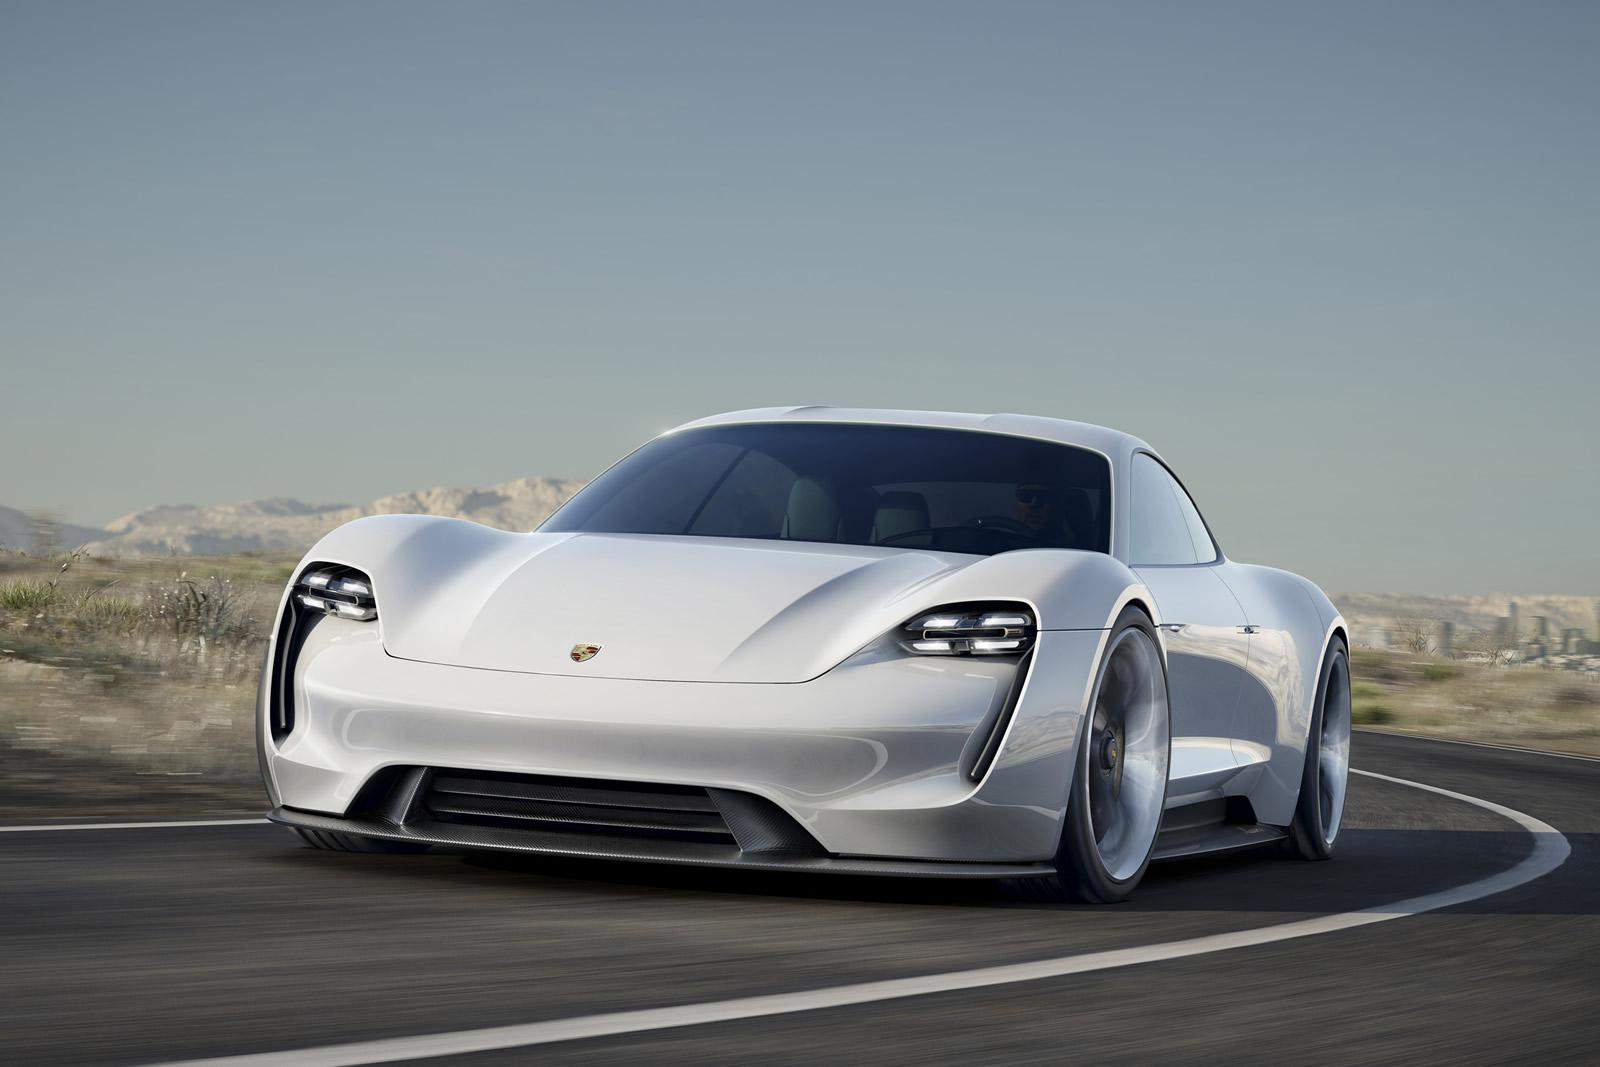 Porsche renames its upcoming four-door all-electric Mission E